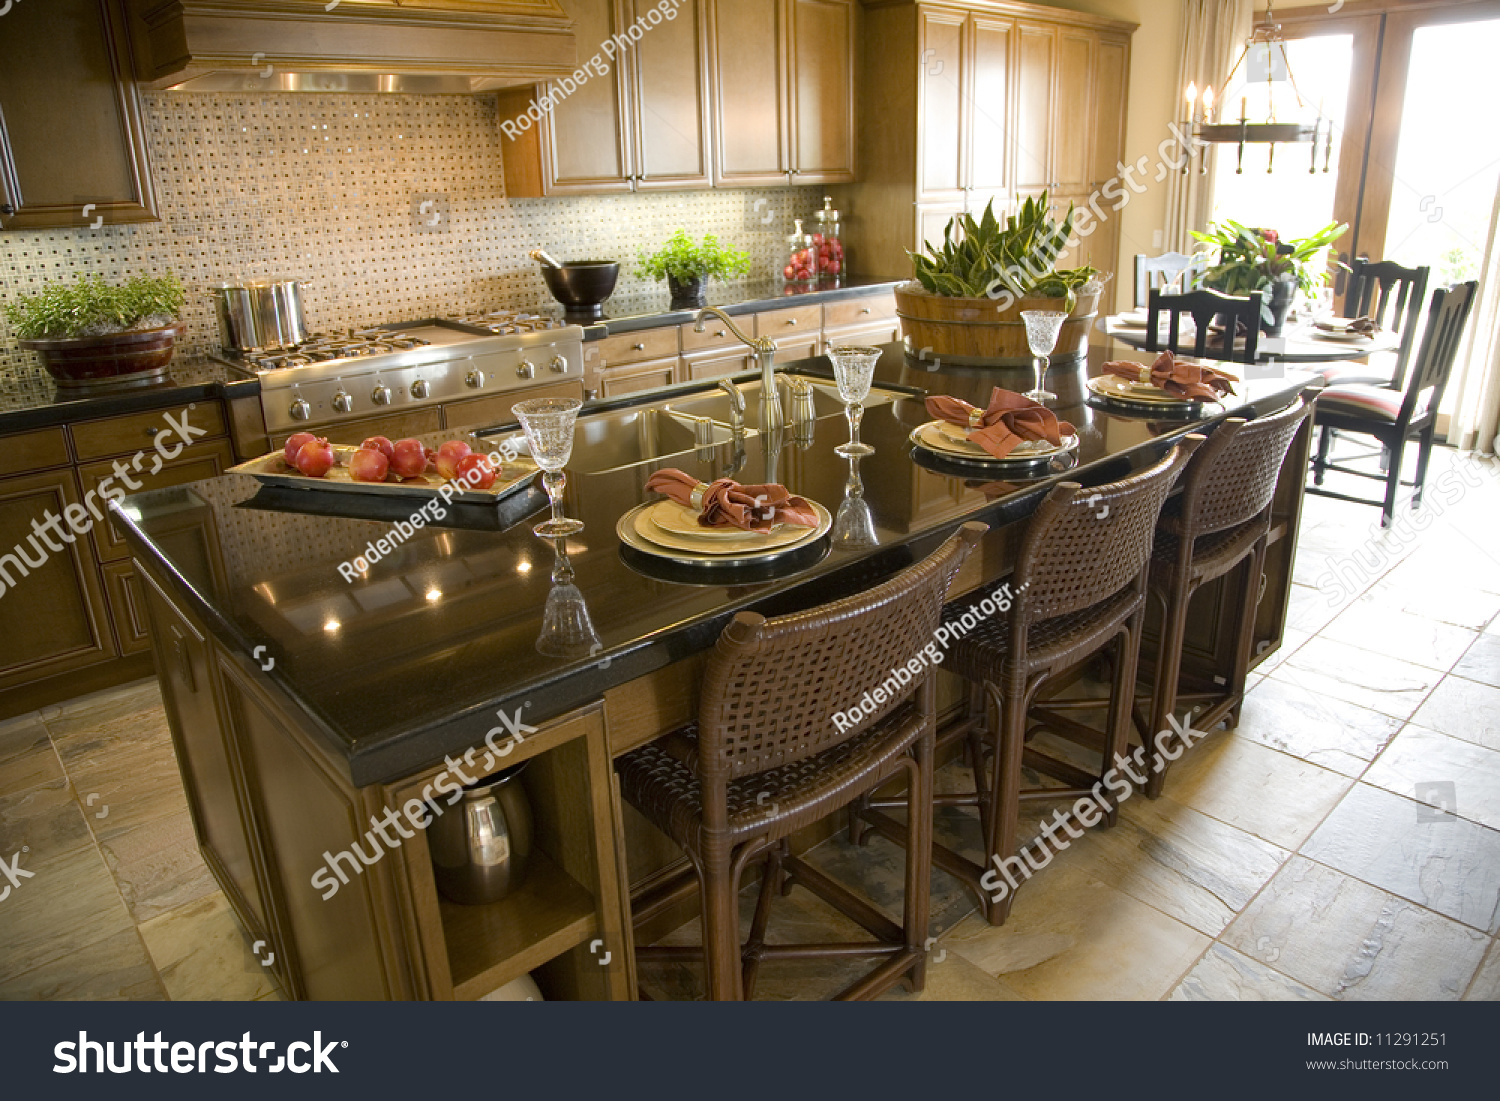 stock-photo-modern-kitchen-1986854.jpg